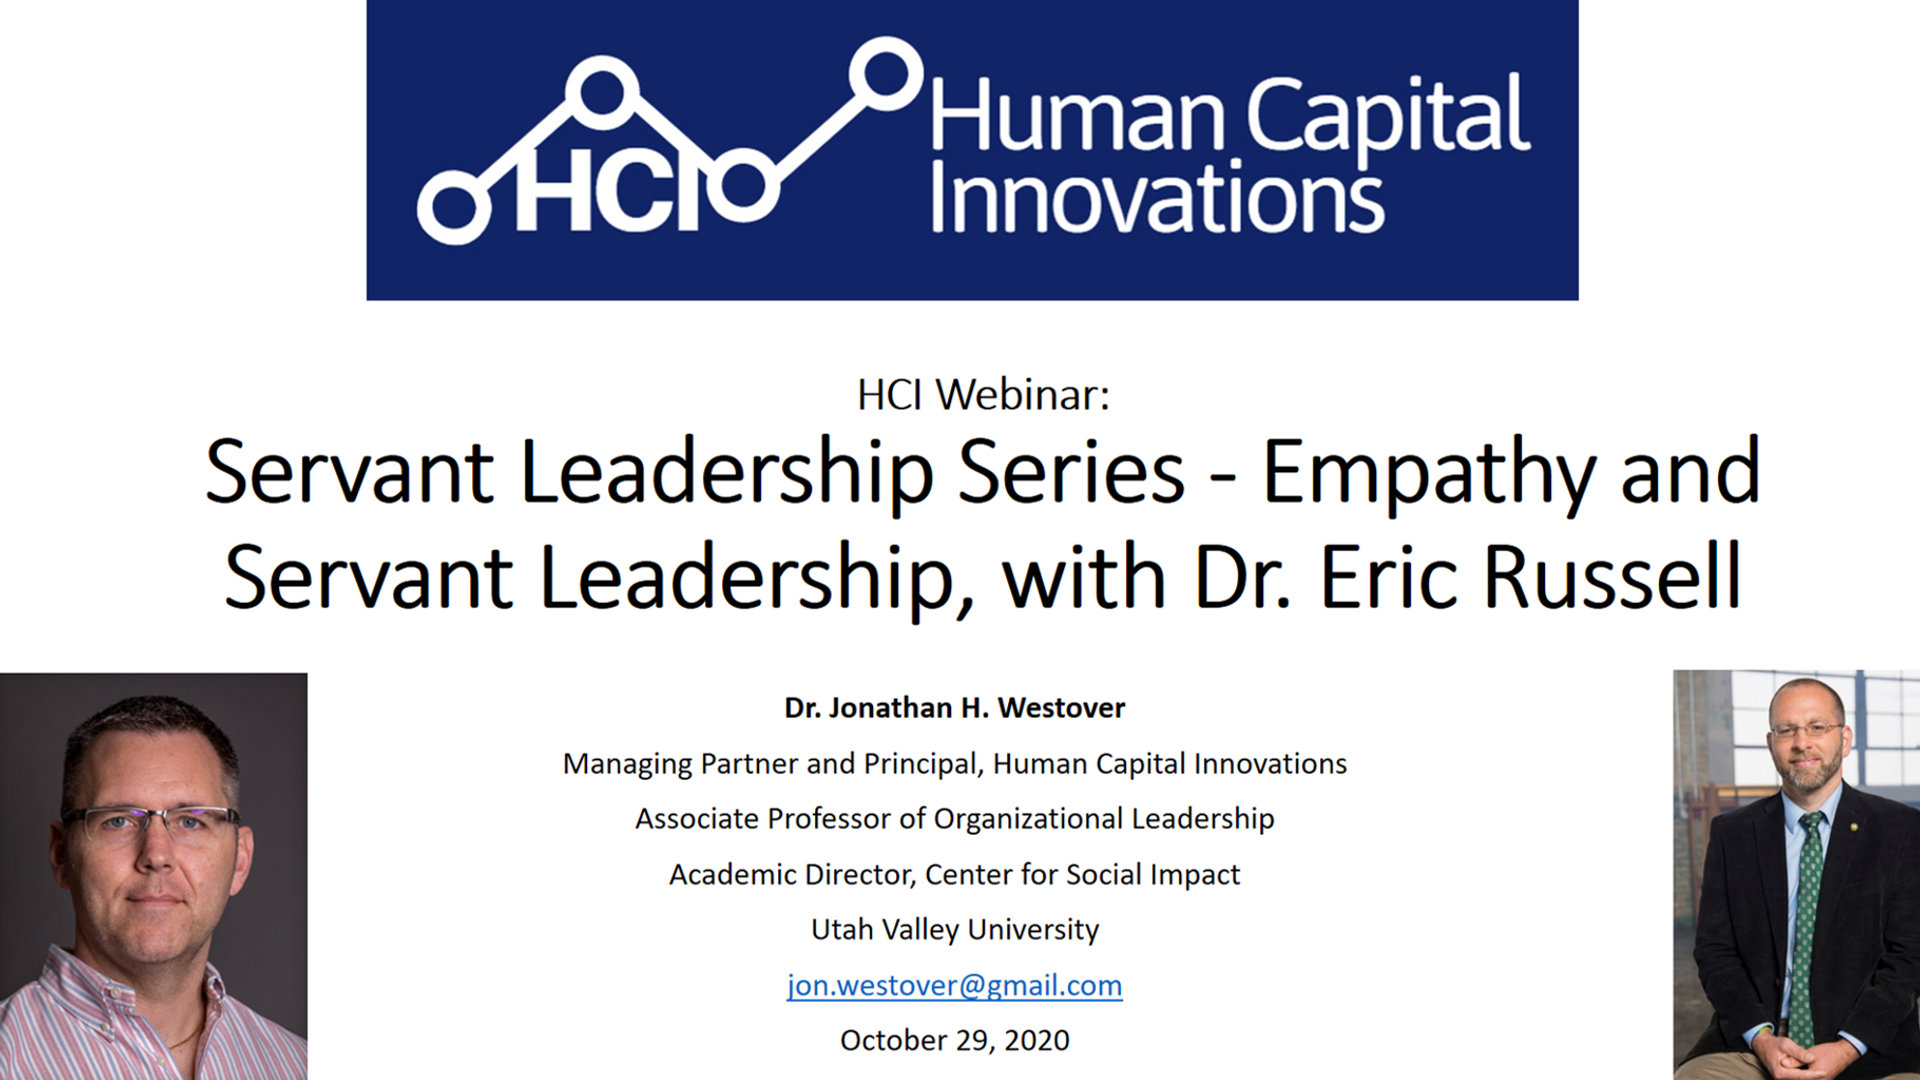 Servant Leadership Series - Empathy and Servant Leadership